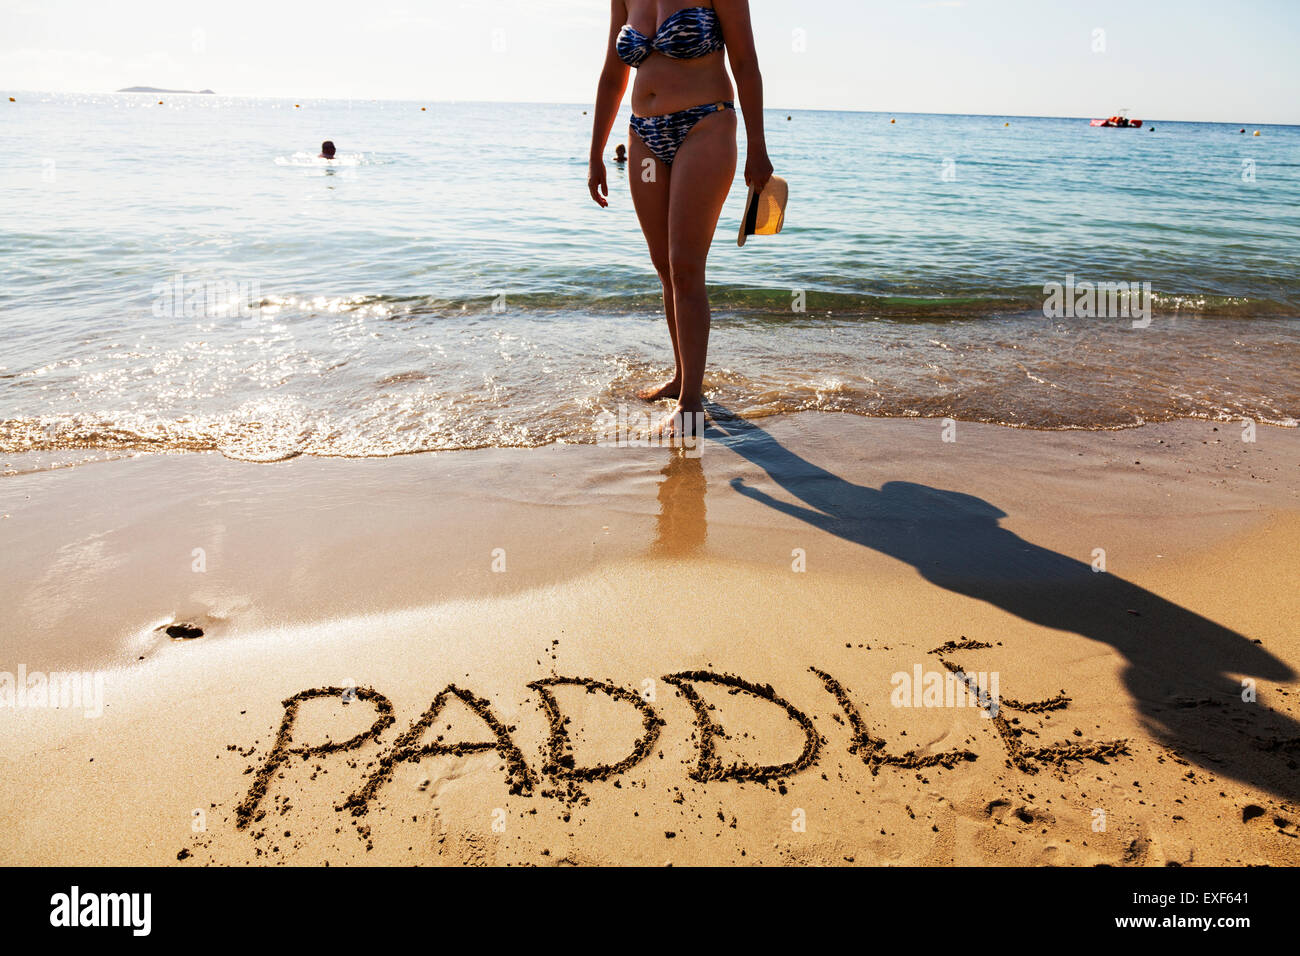 Paddle paddling feet in sea word written in sand on beach coast coastline Ibiza Spain Spanish Santa Eulalia Del - Stock Image